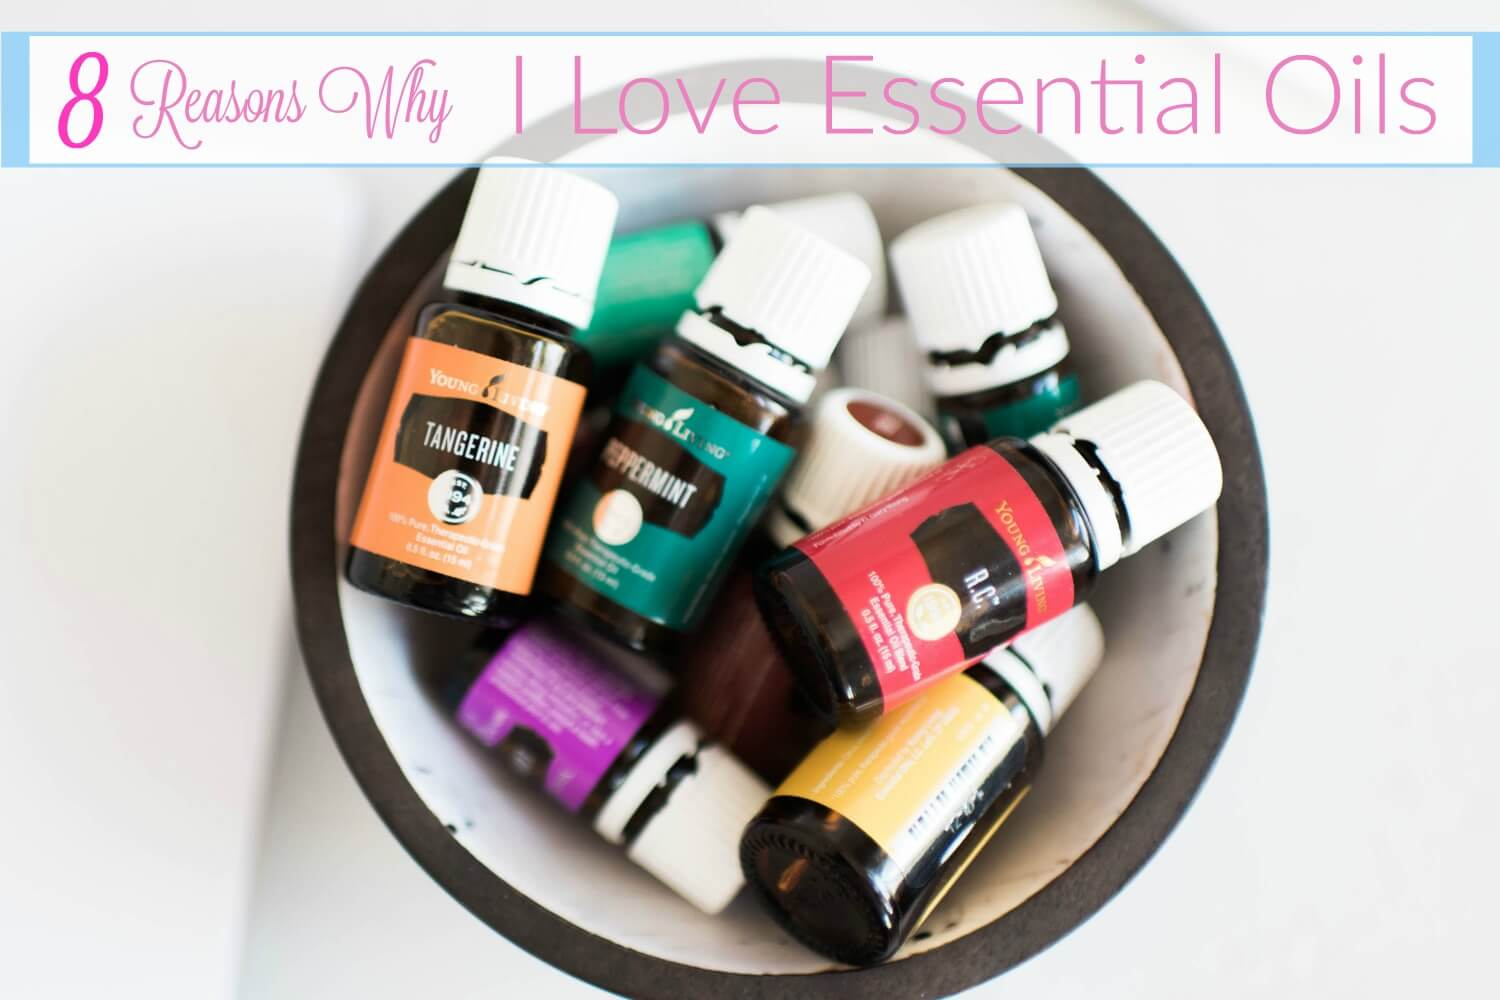 8 Reasons I Love Essential Oils